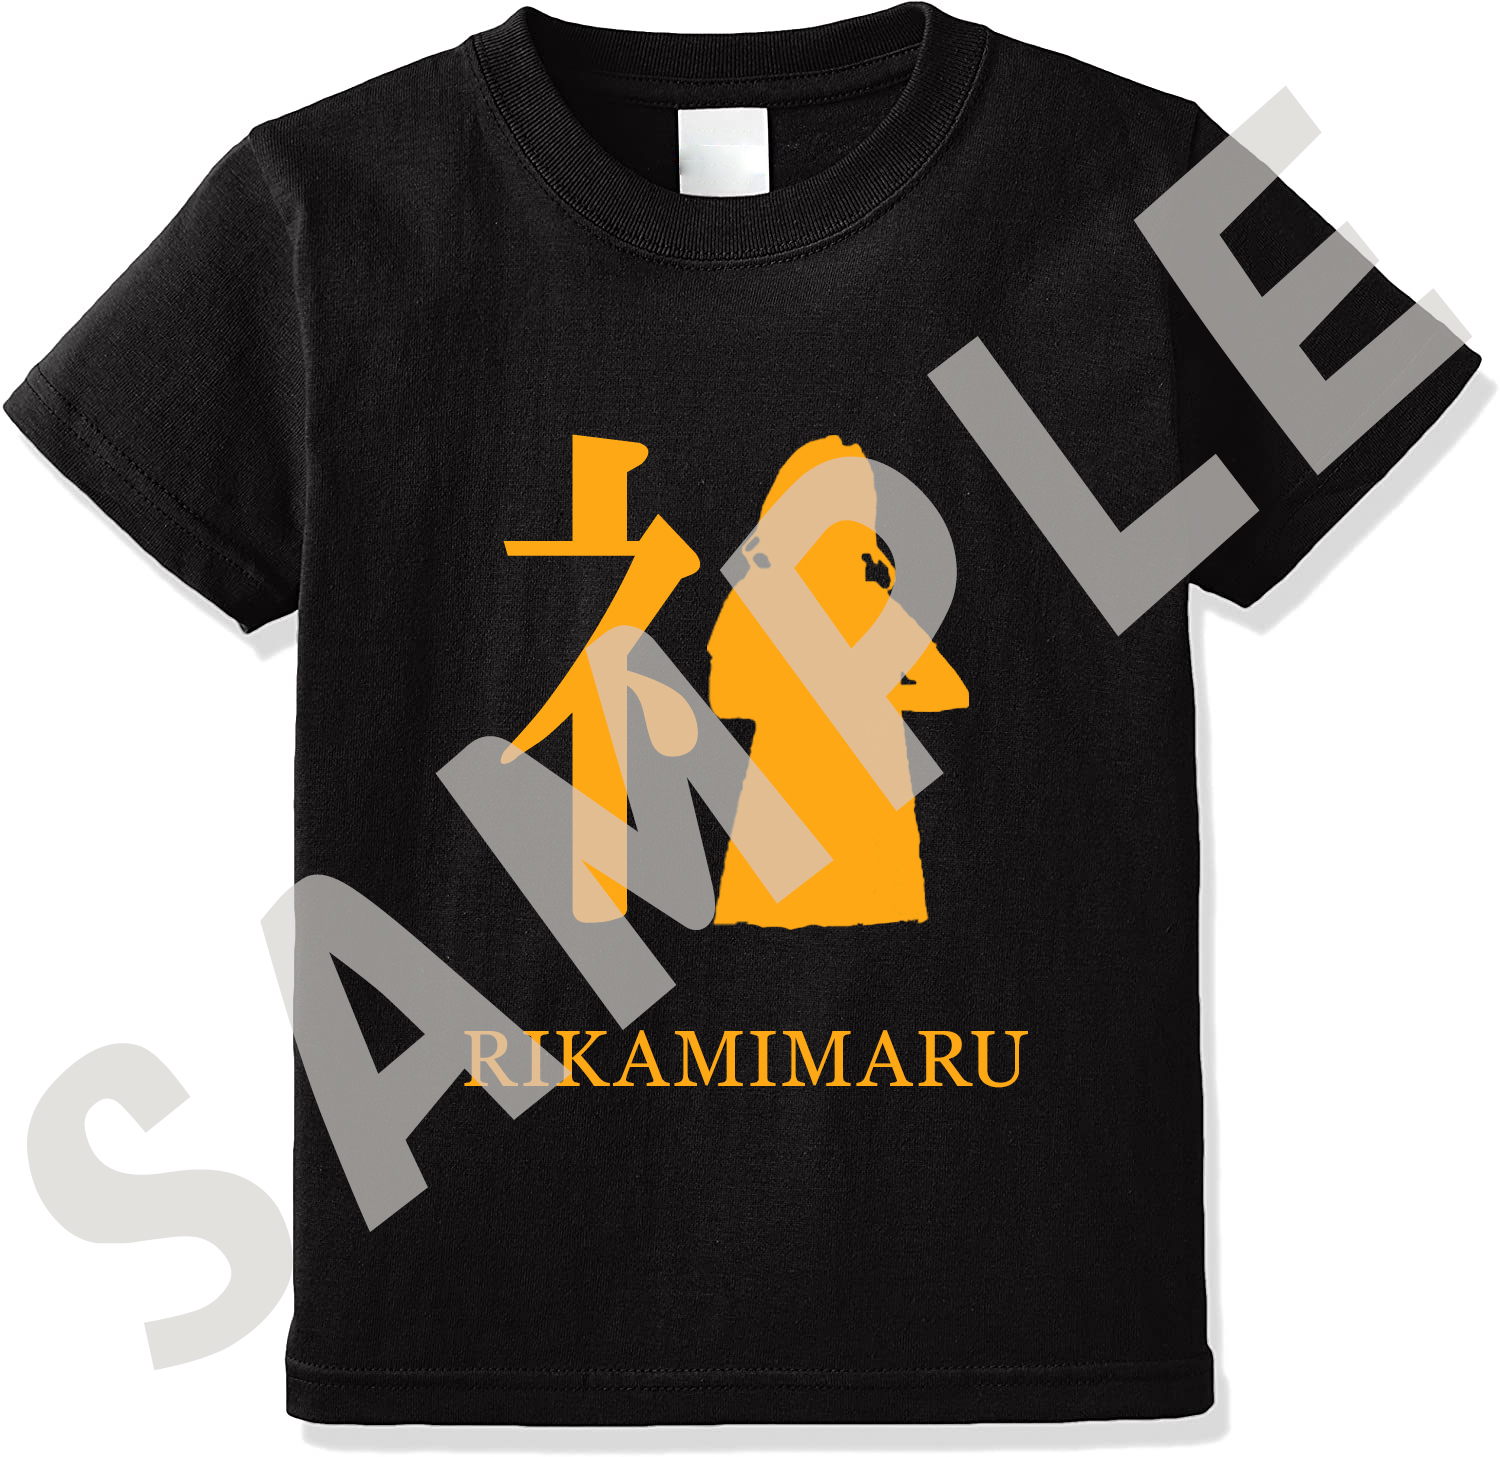 Nagae Rika T-shirt RIKAMIMARU XL SIZE Release in September 25th No.1